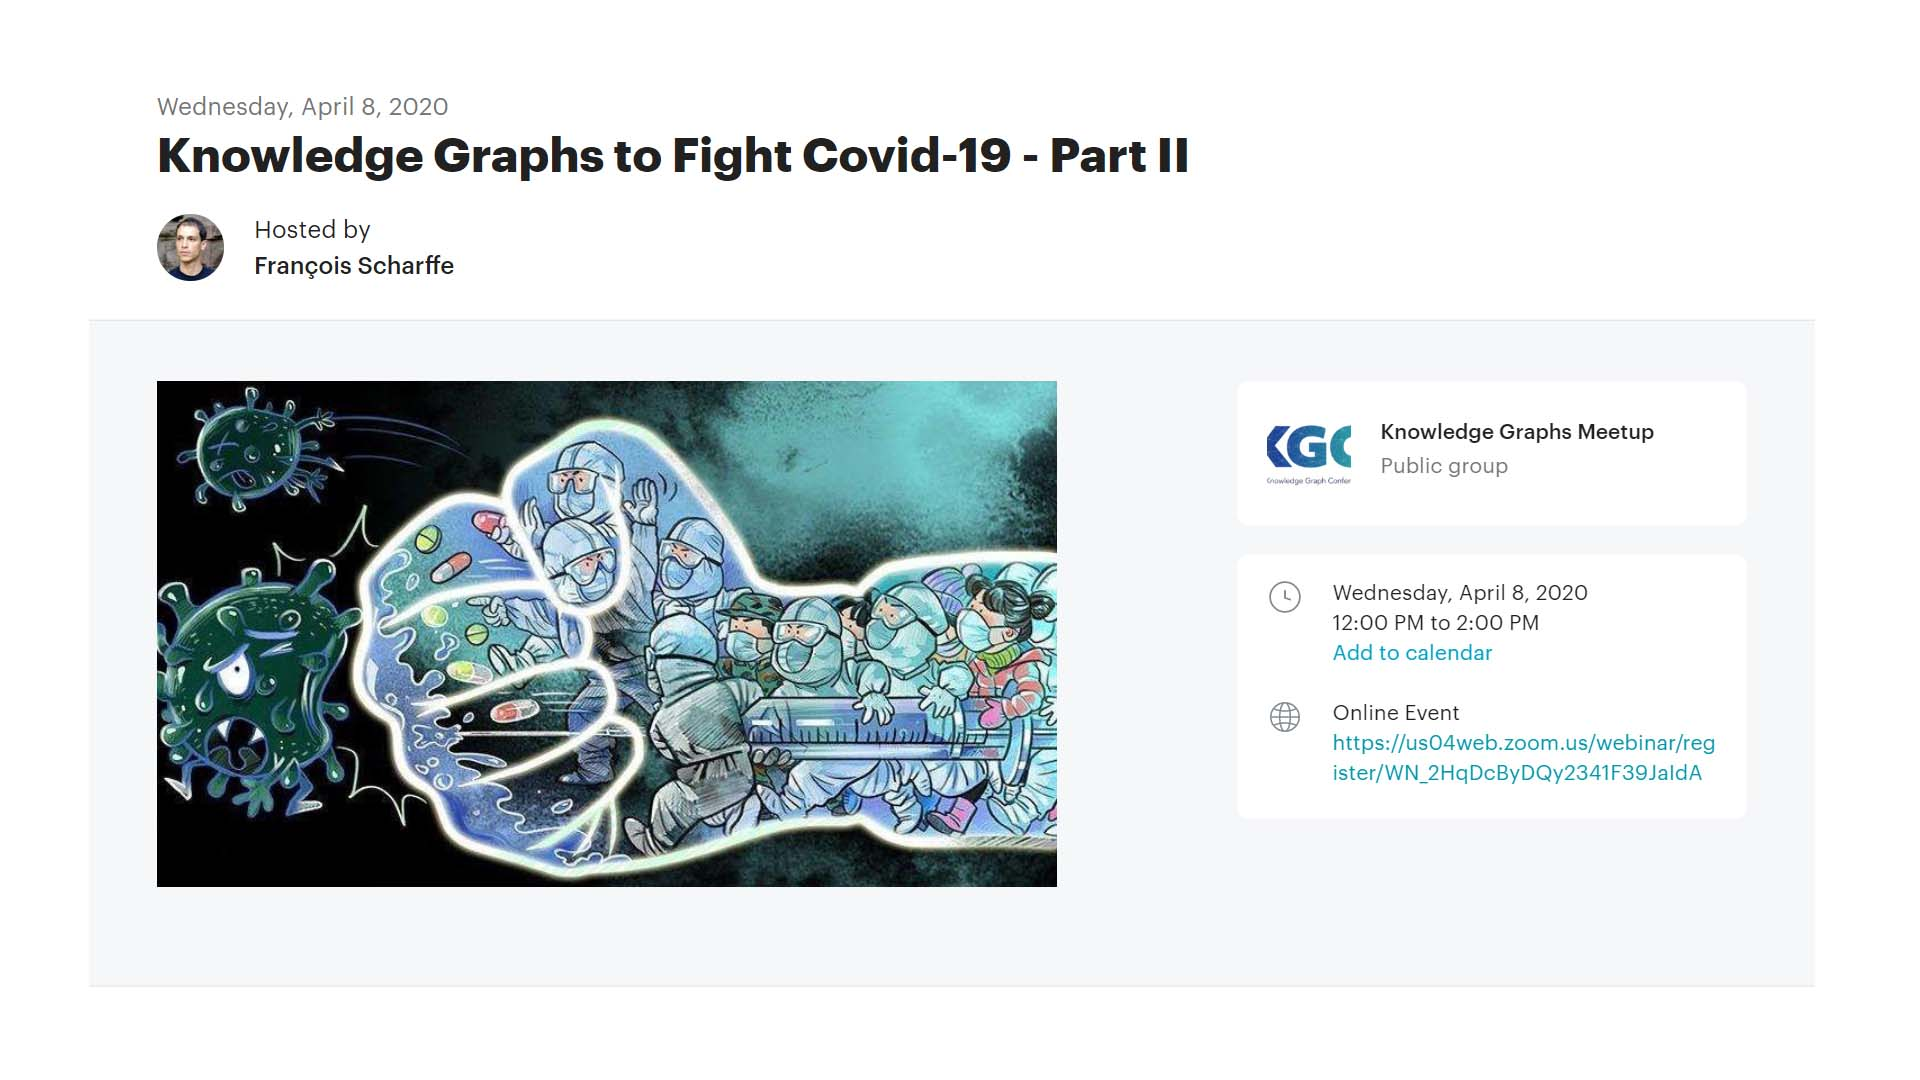 Knowledge Graphs to Fight COVID-19 - Part II